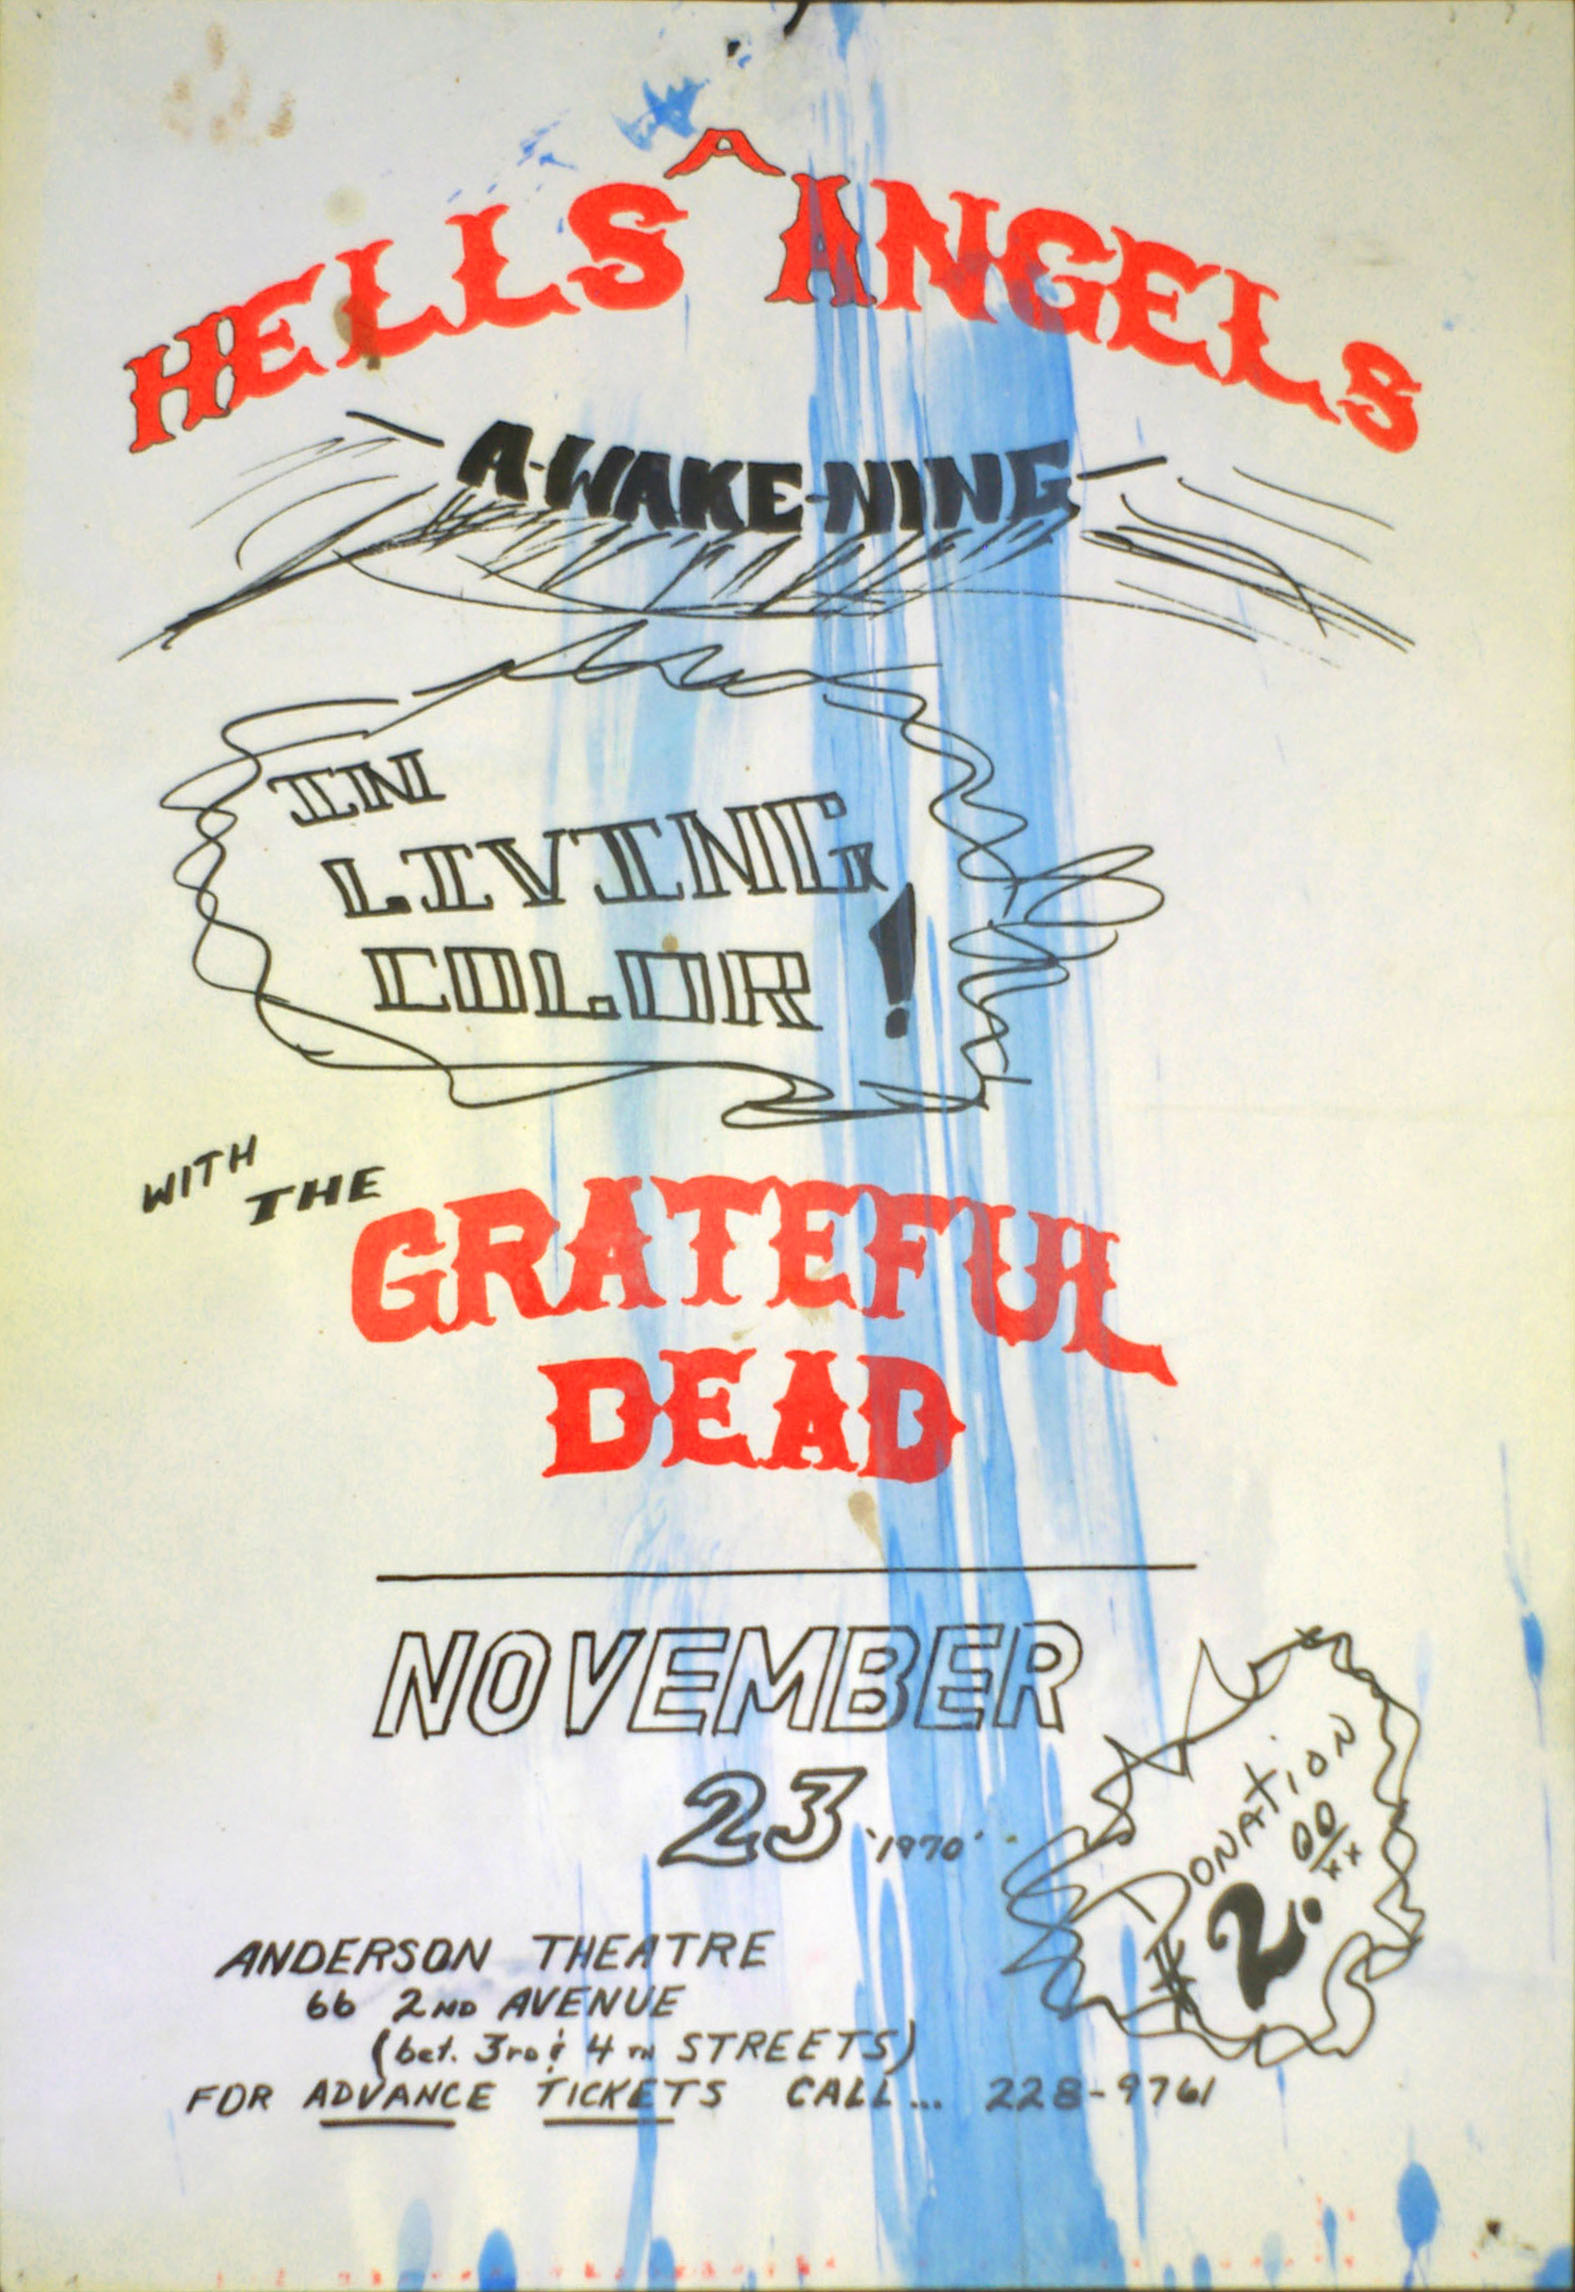 GDSets com - Grateful Dead, Jerry Garcia, Bob Weir, and related